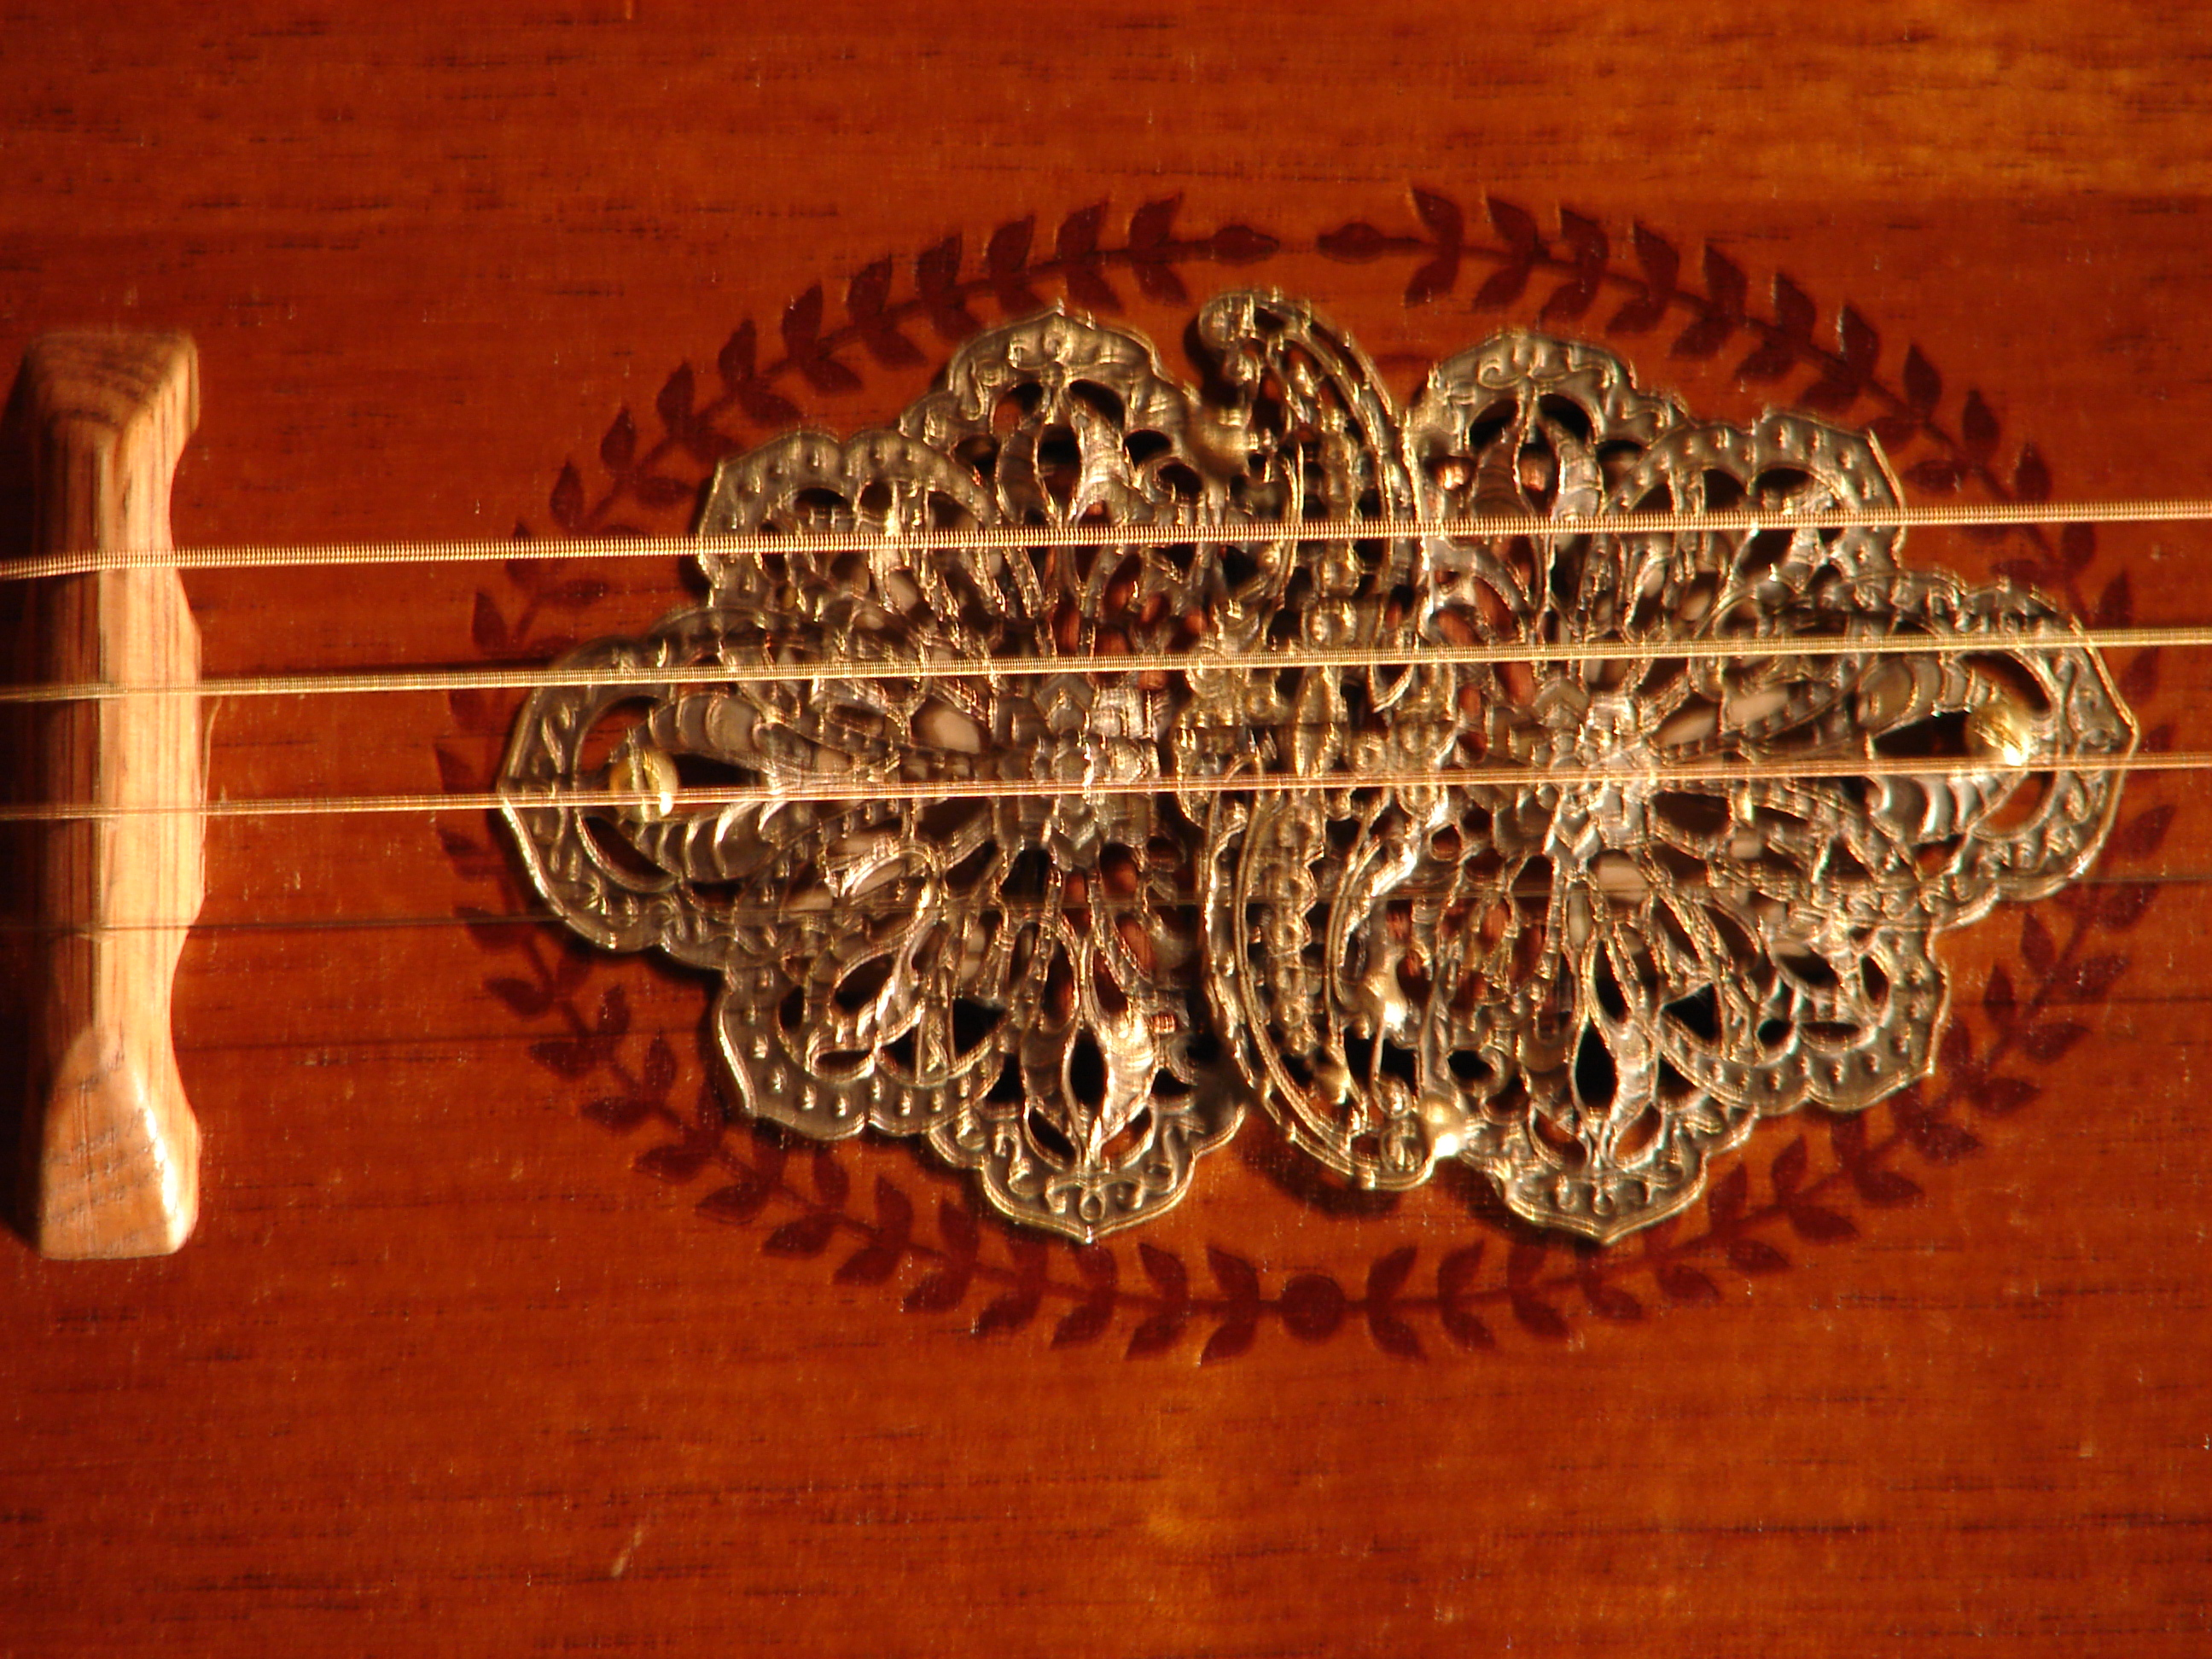 Ornate brass sound hole cover